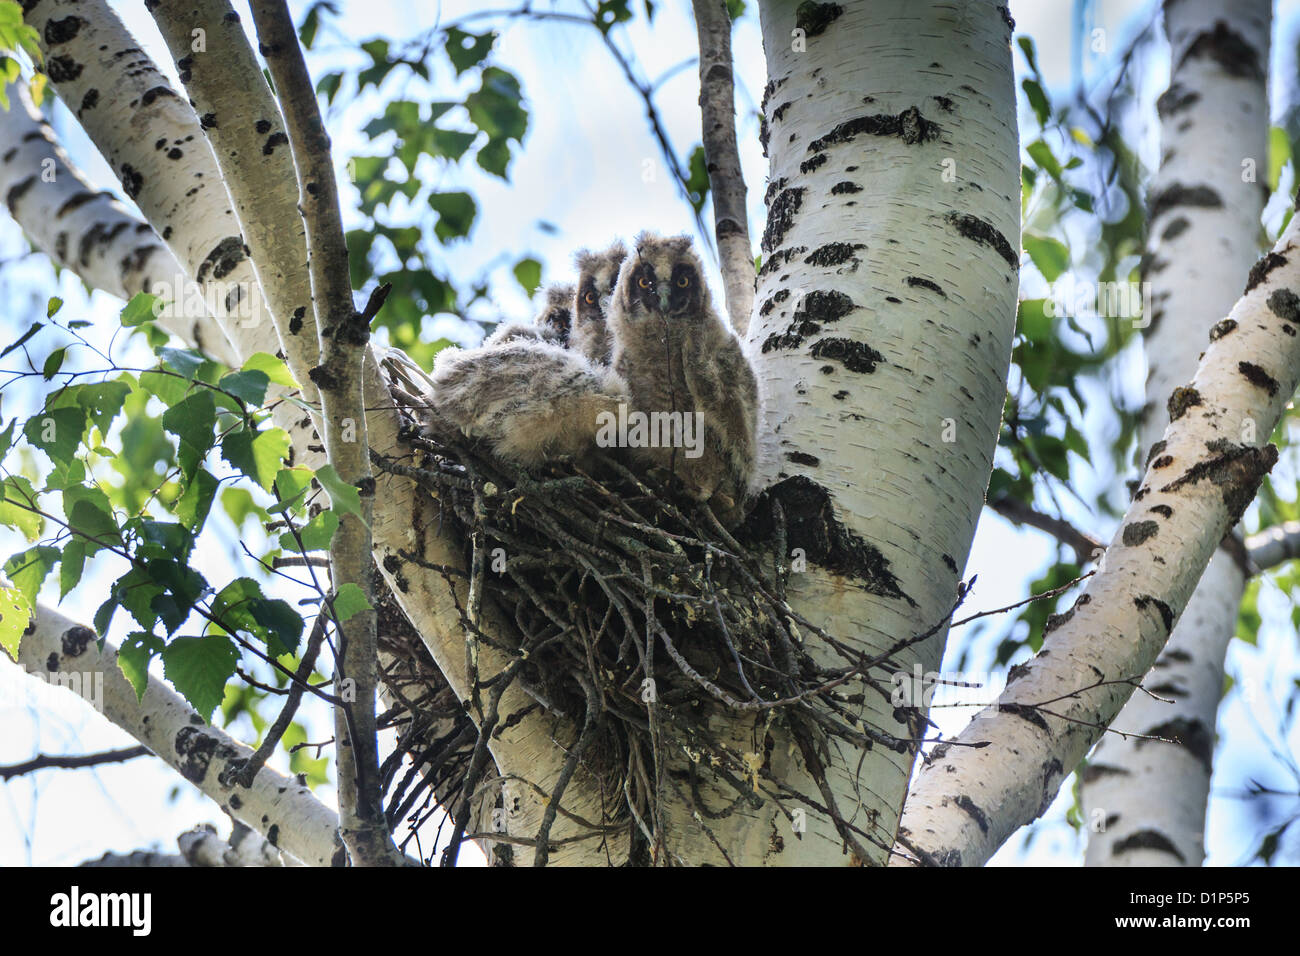 Asio otus, Long-eared Owl. Nest of a bird with baby birds in the nature. - Stock Image